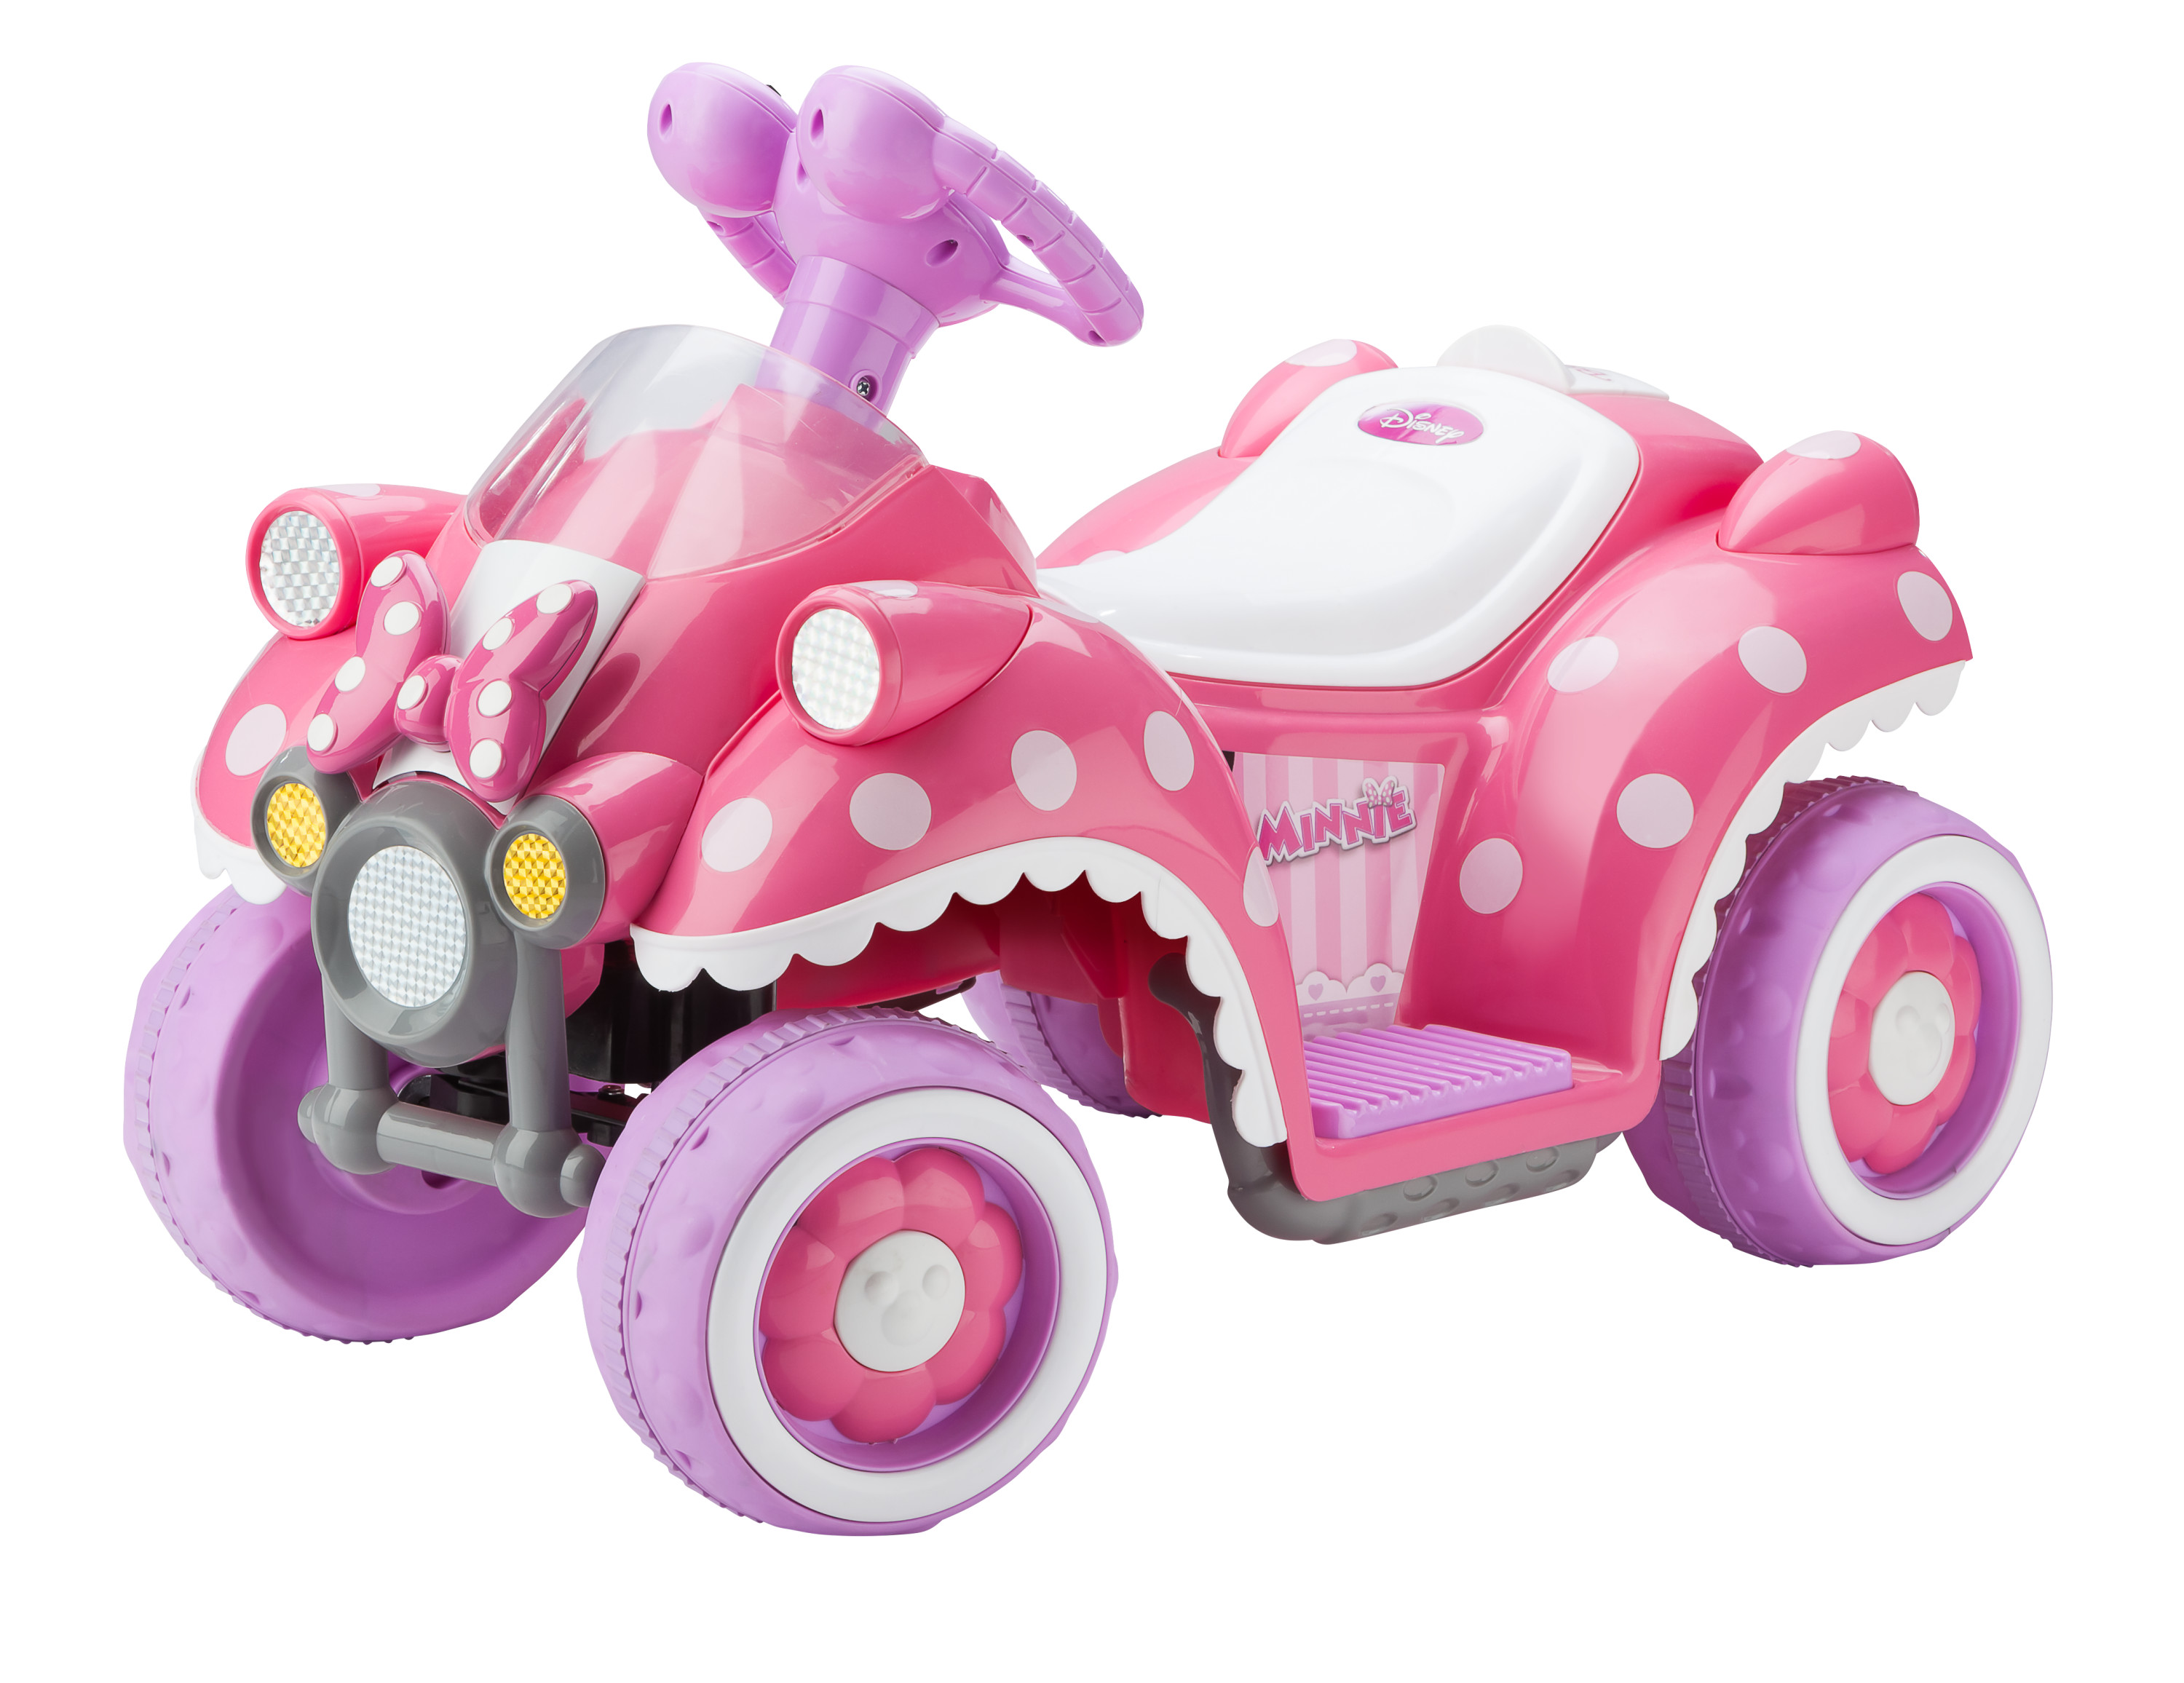 Kid Trax: Disney Minnie Mouse 6V Electric Quad Ride On! .99 at Amazon!